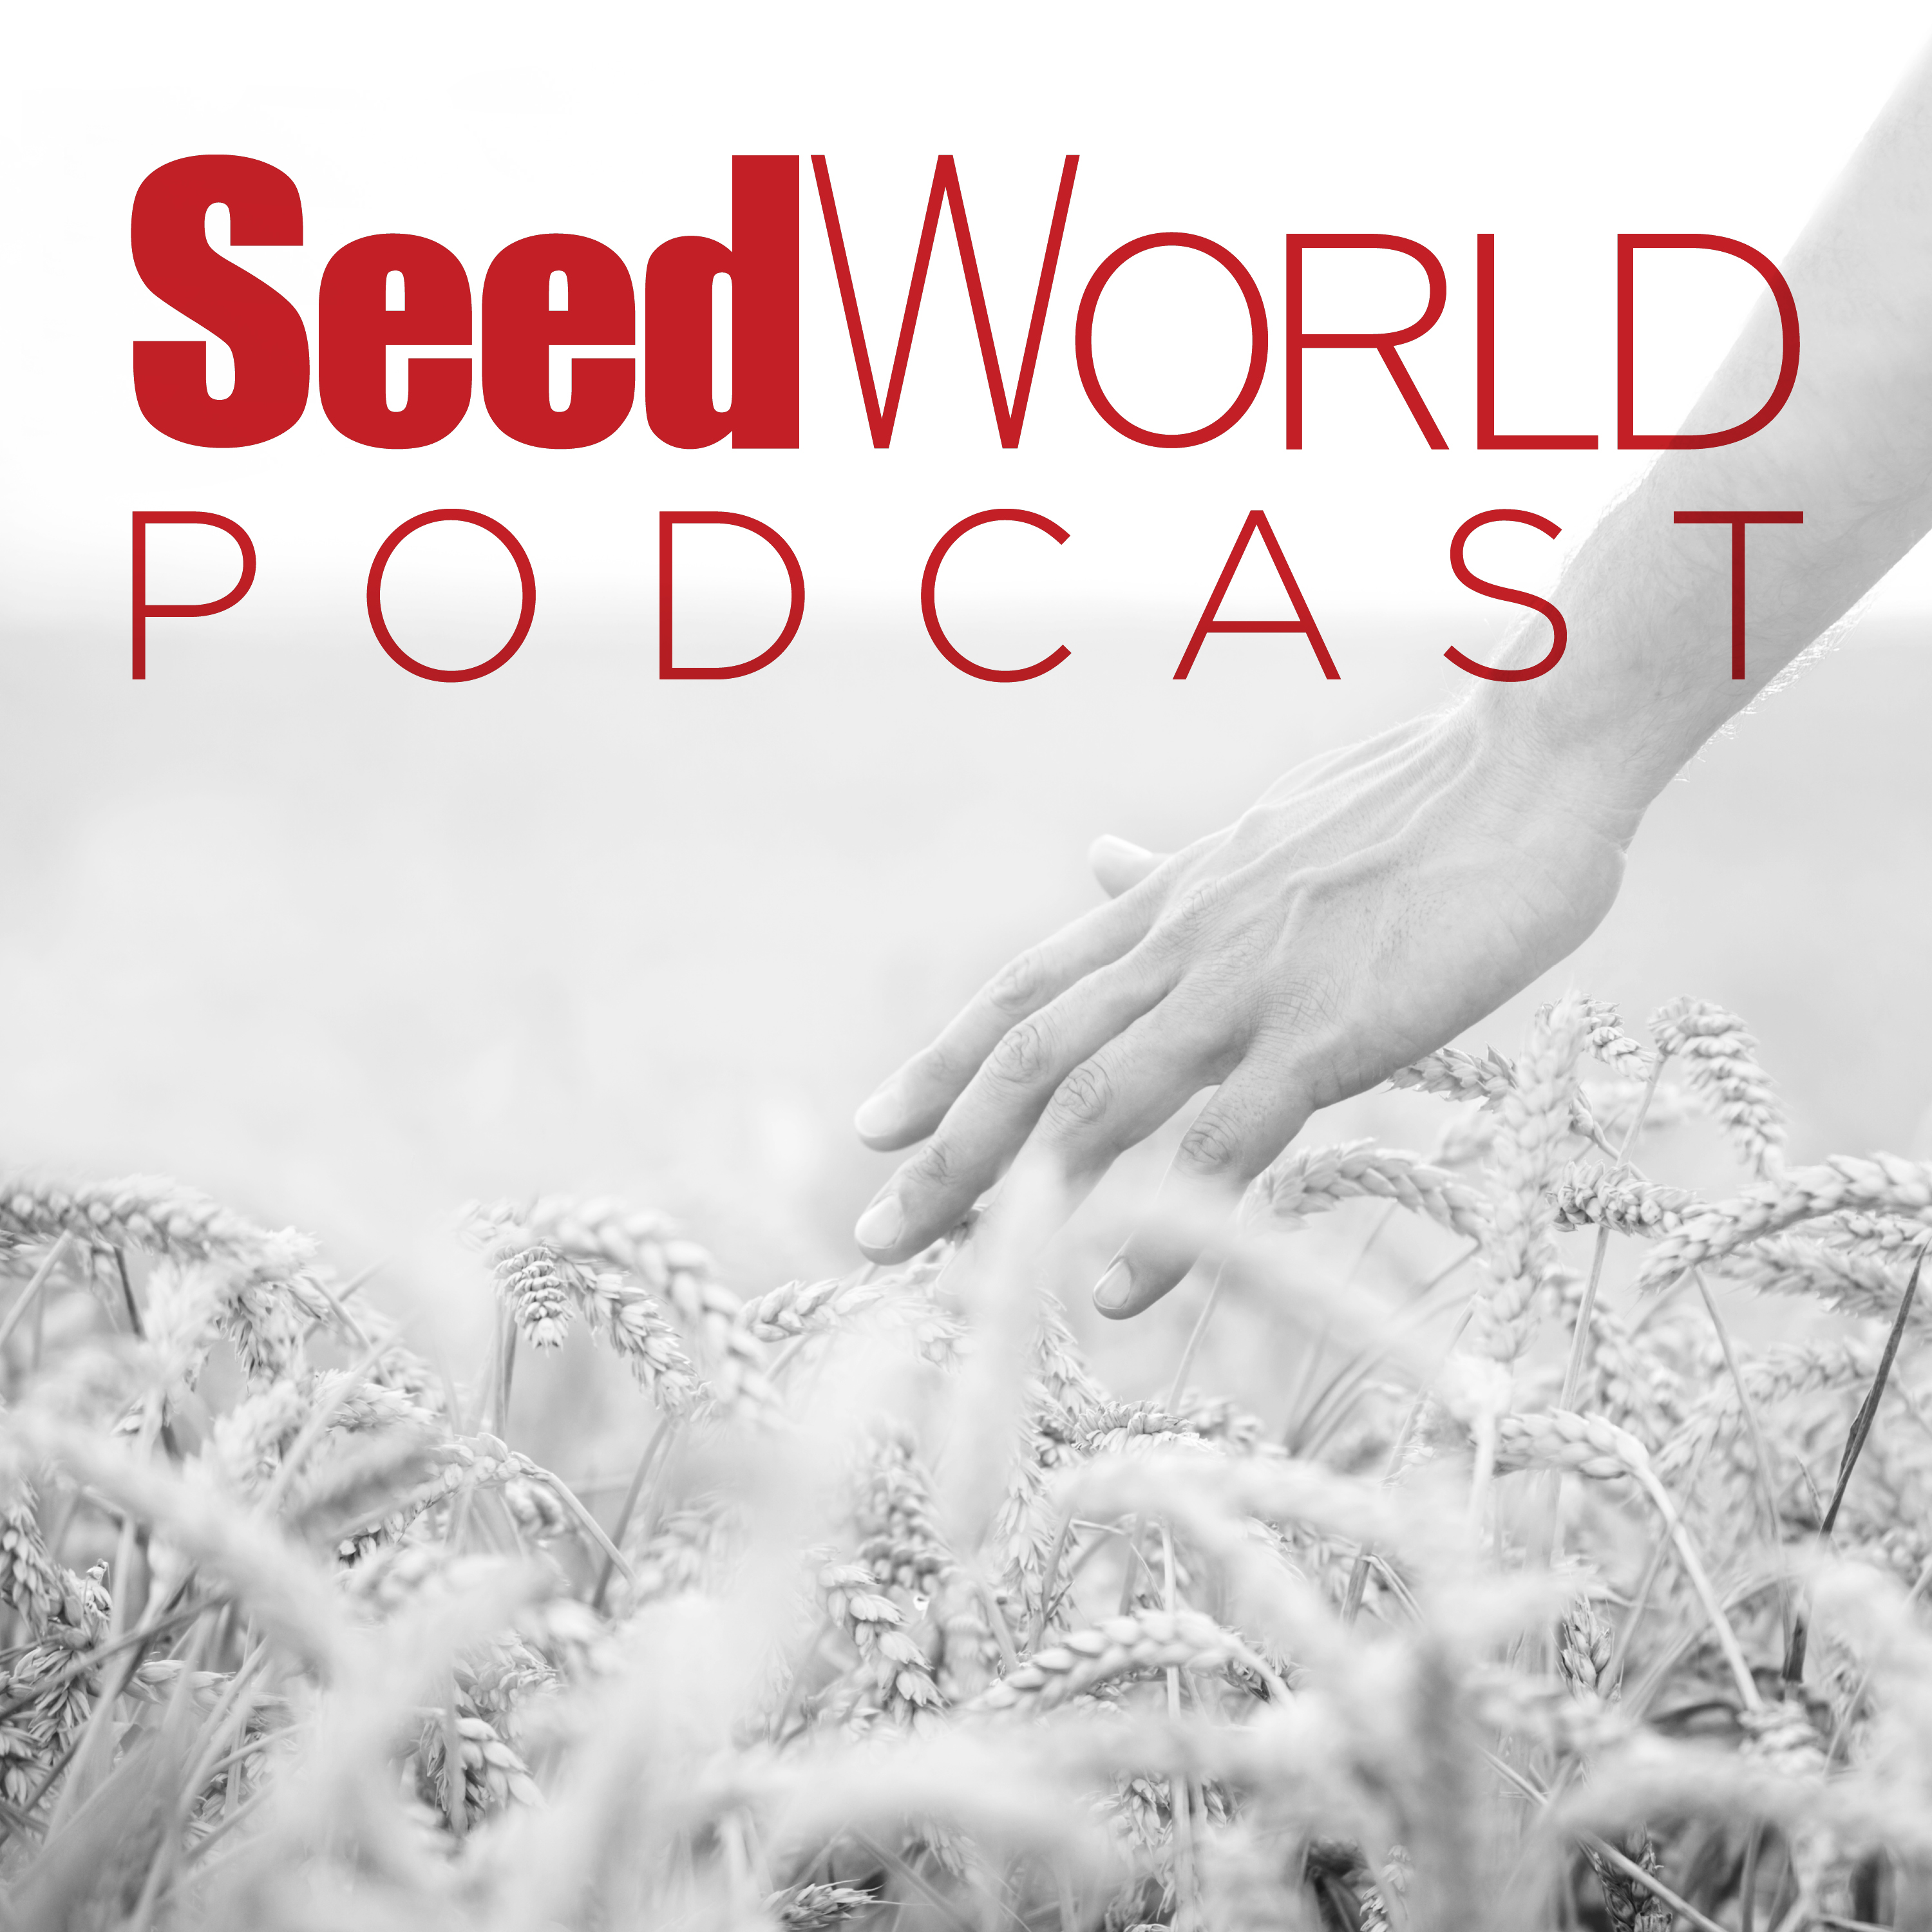 Seed World Podcast